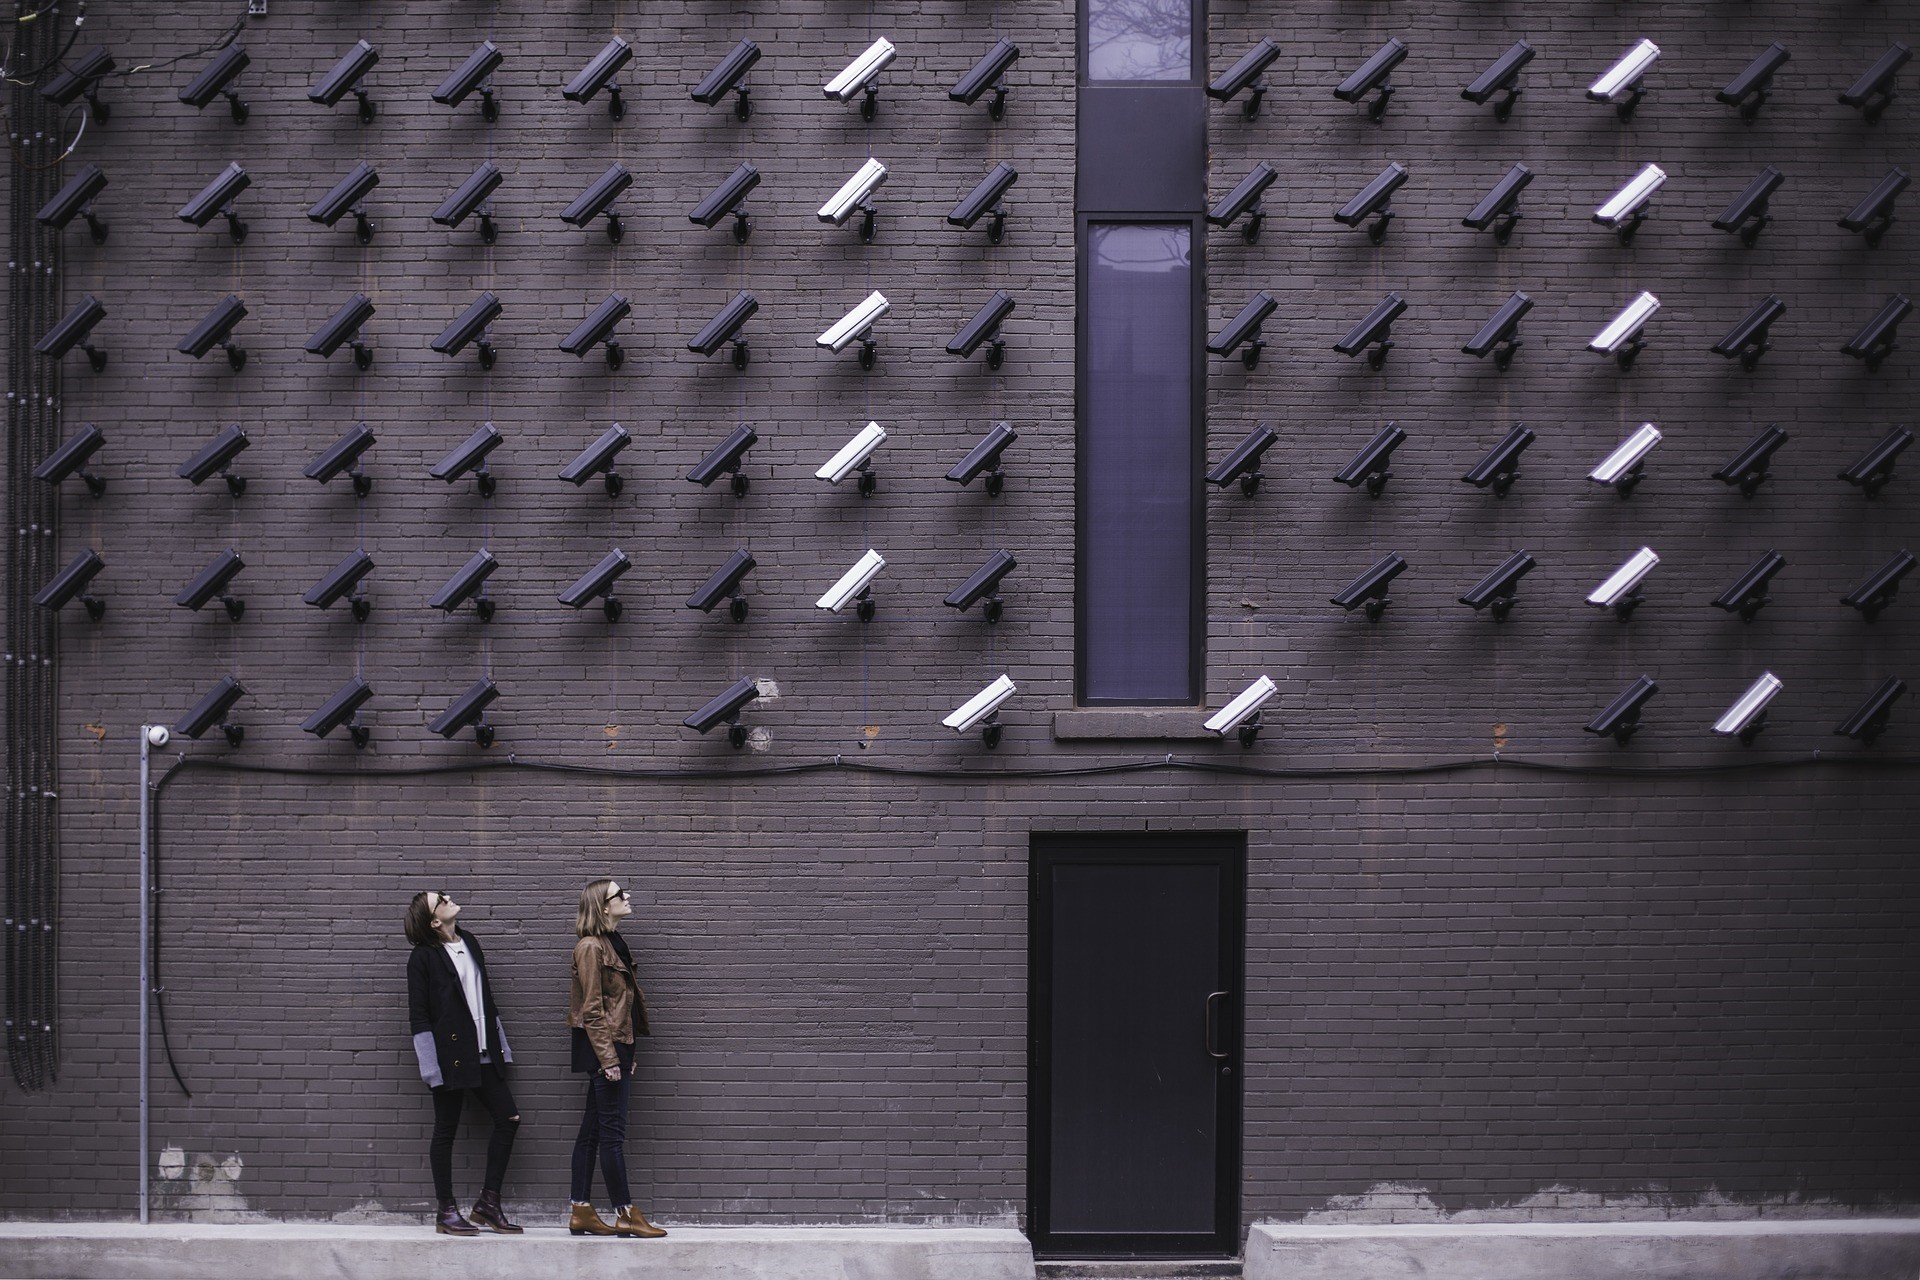 CCTV Cameras Don't Guarantee 100% Surveillance; Here's Why